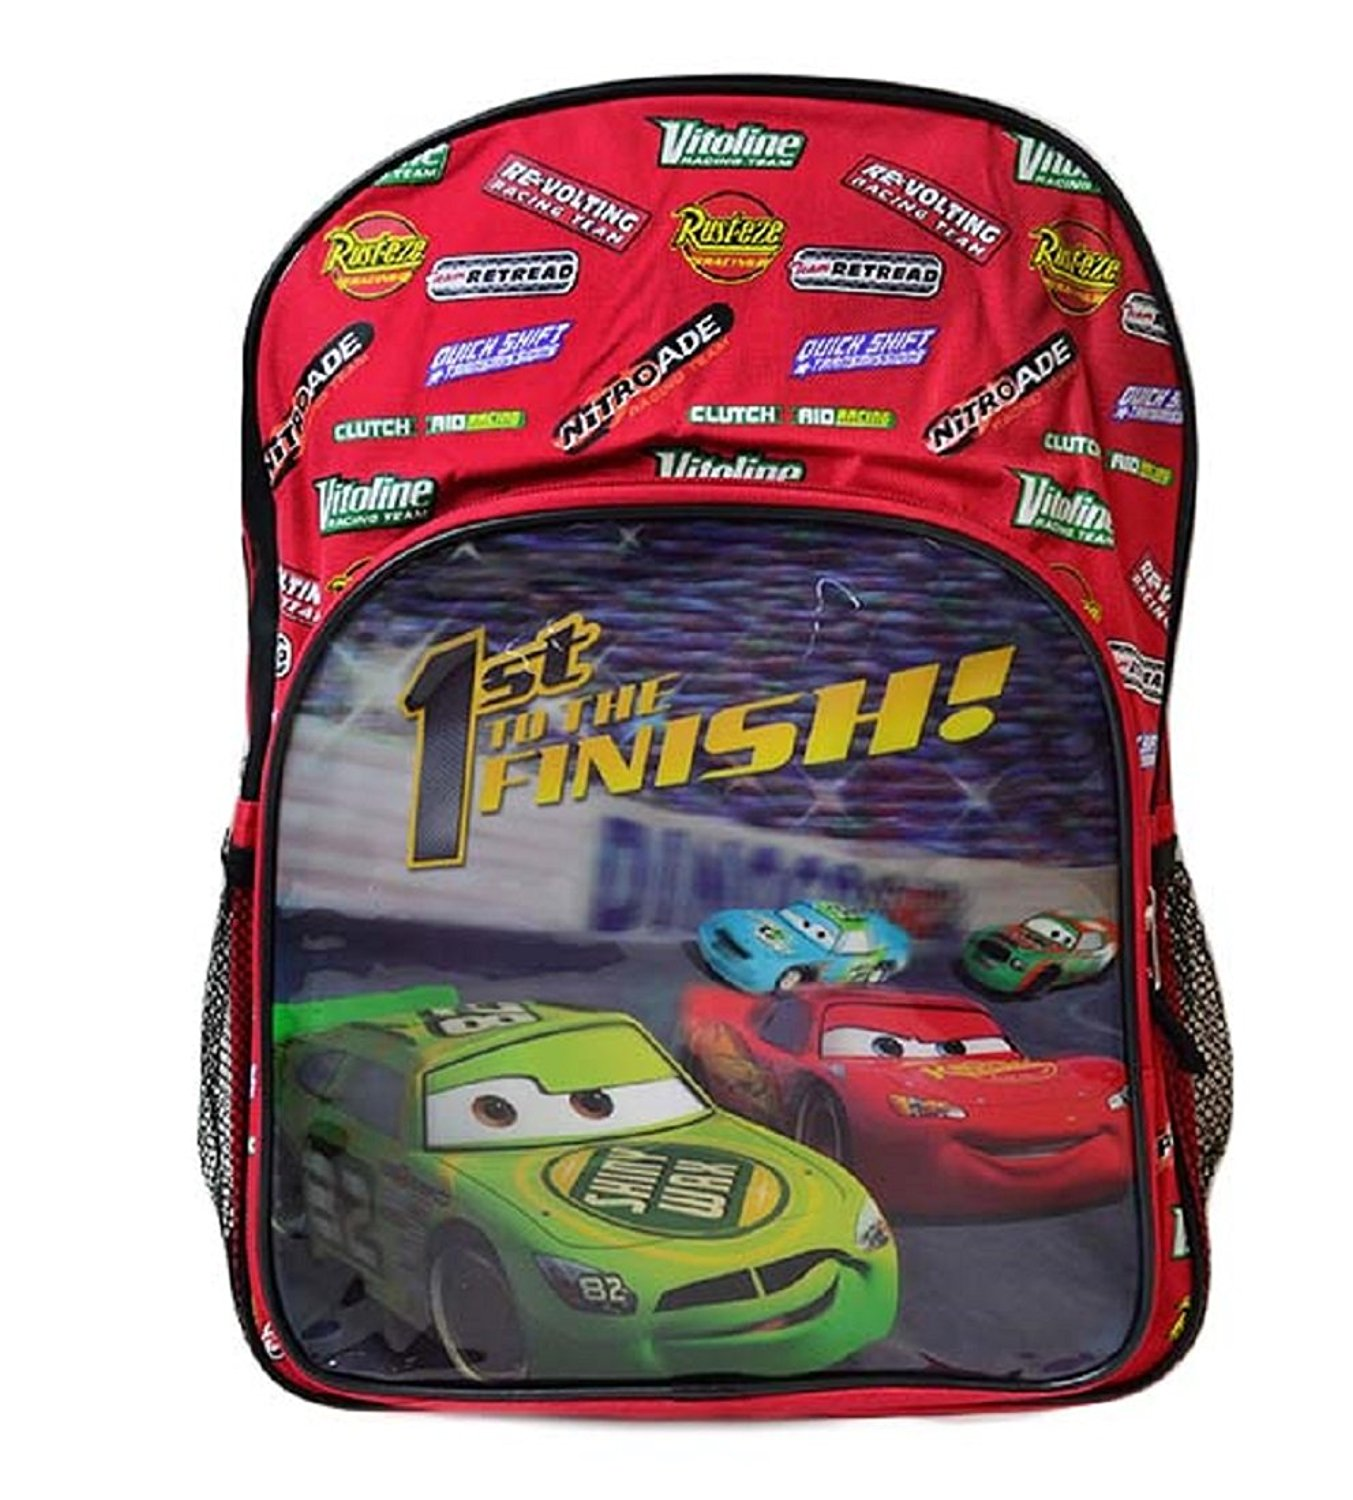 Disney Cars Pixar 1St To The Finish School Boys Backpack Graphic Print 16 Red